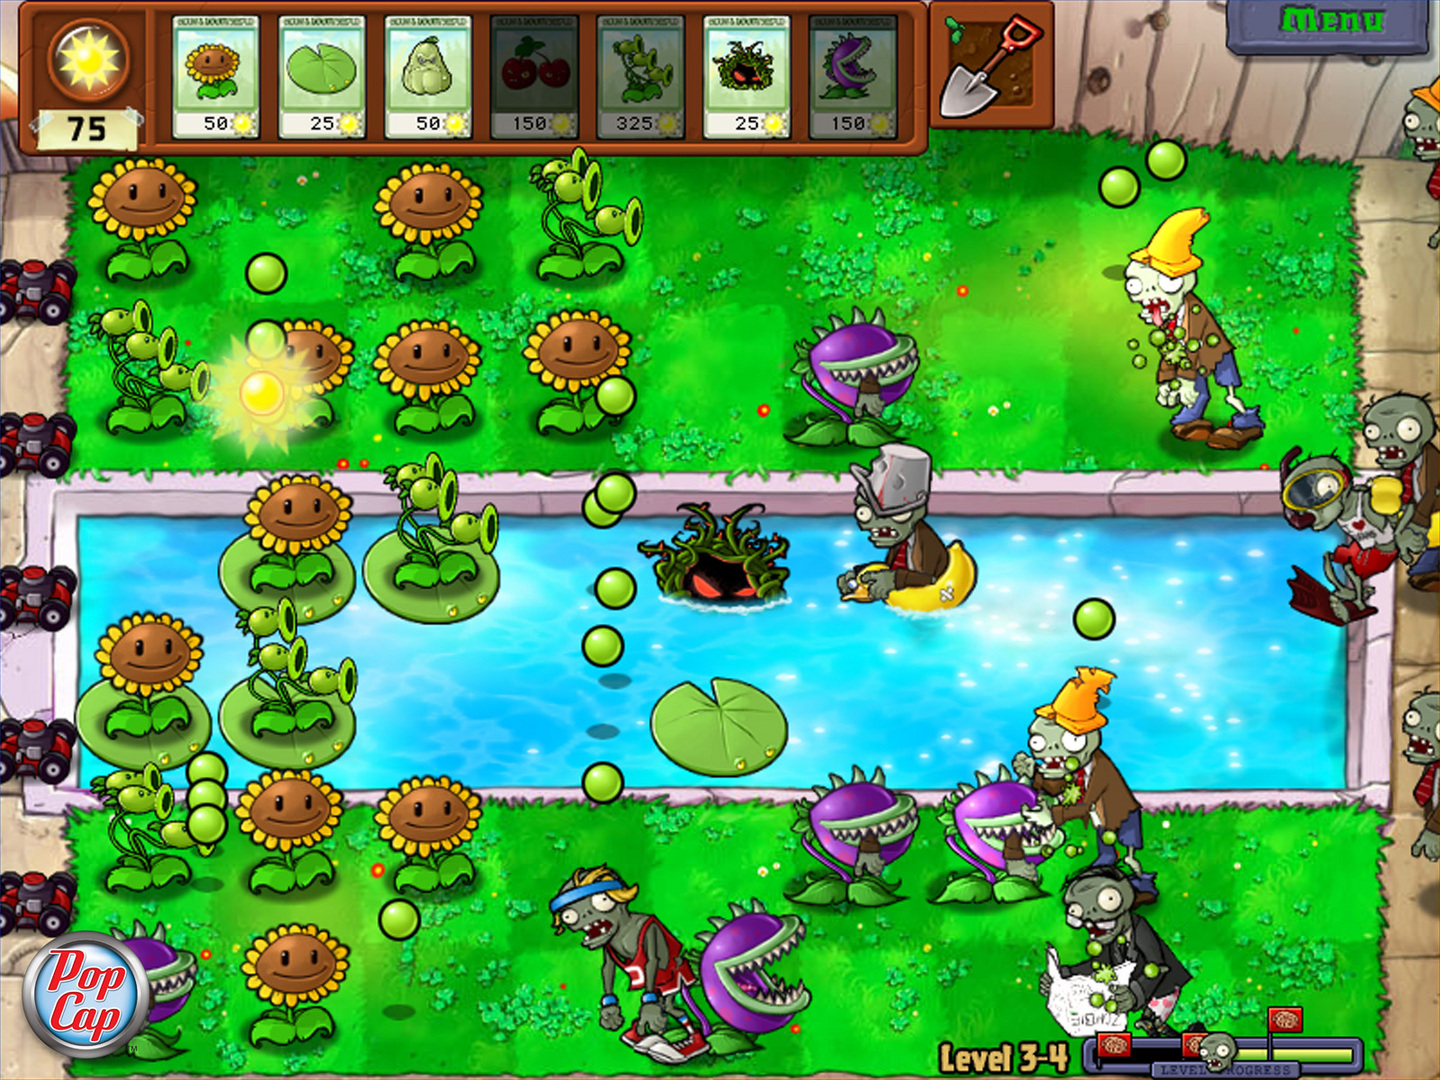 plants vs zombies games free download full version mac